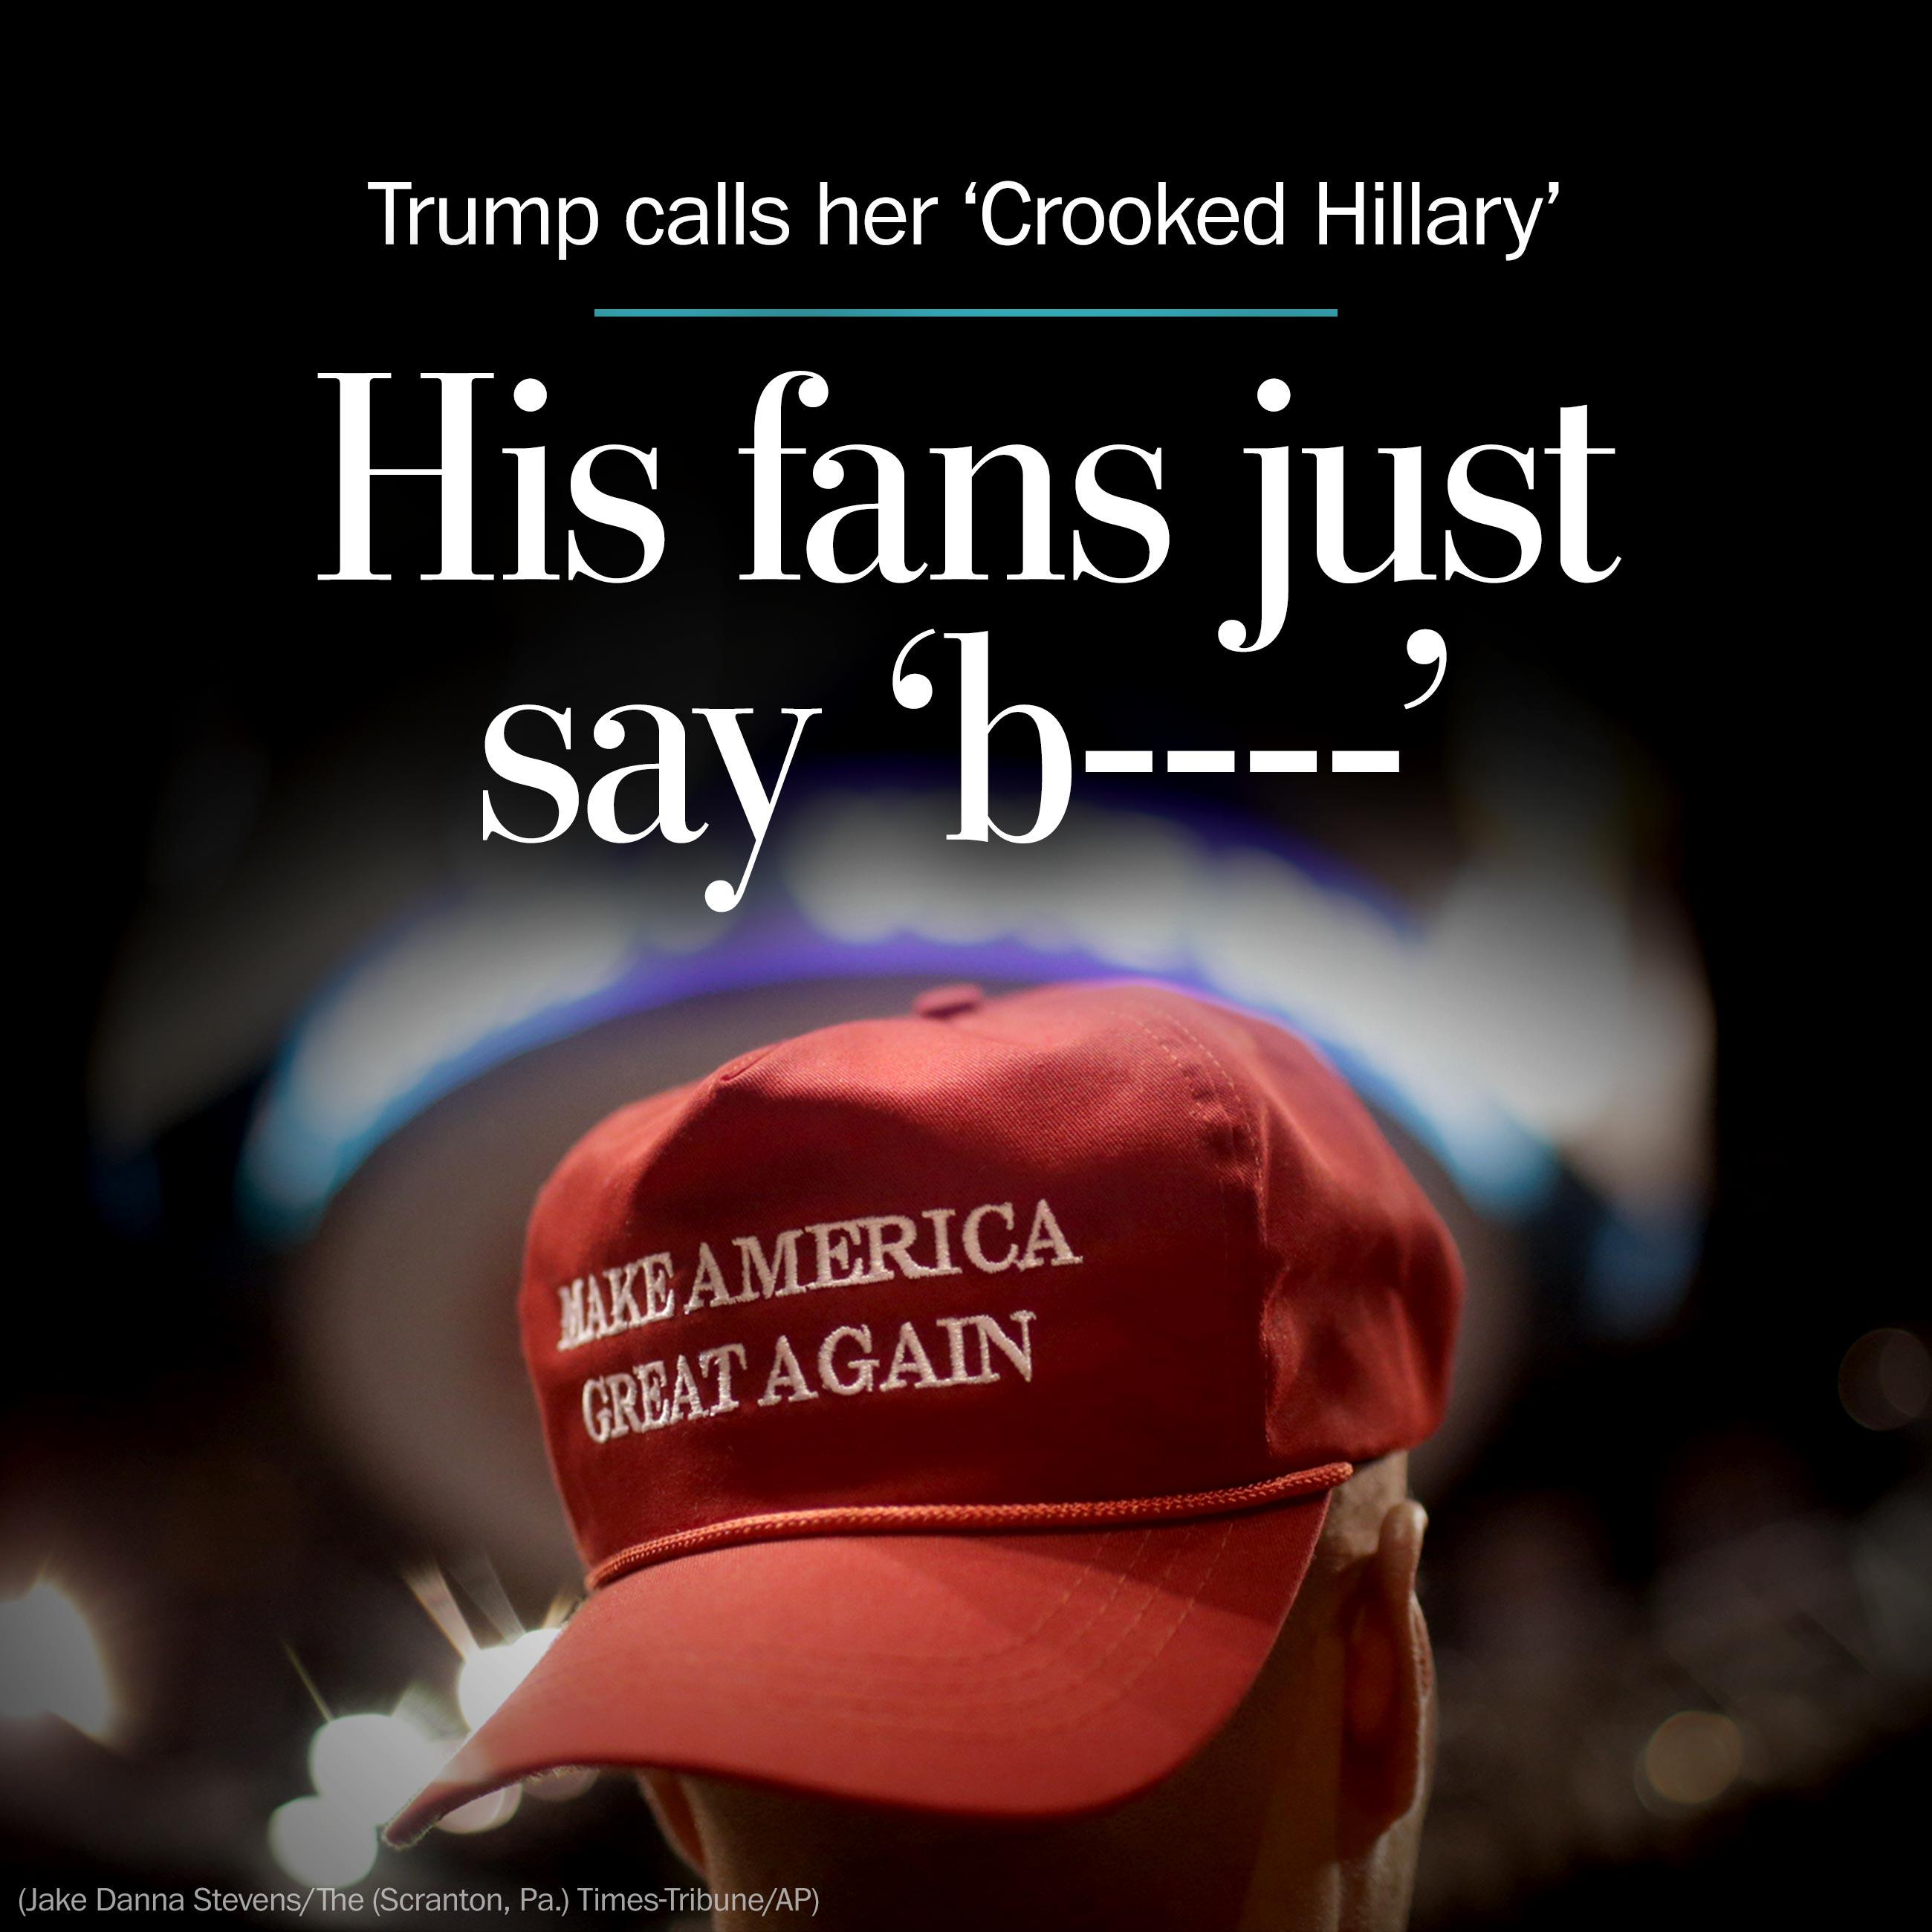 Donald Trump calls her 'Crooked Hillary,' but his fans just say 'b----'